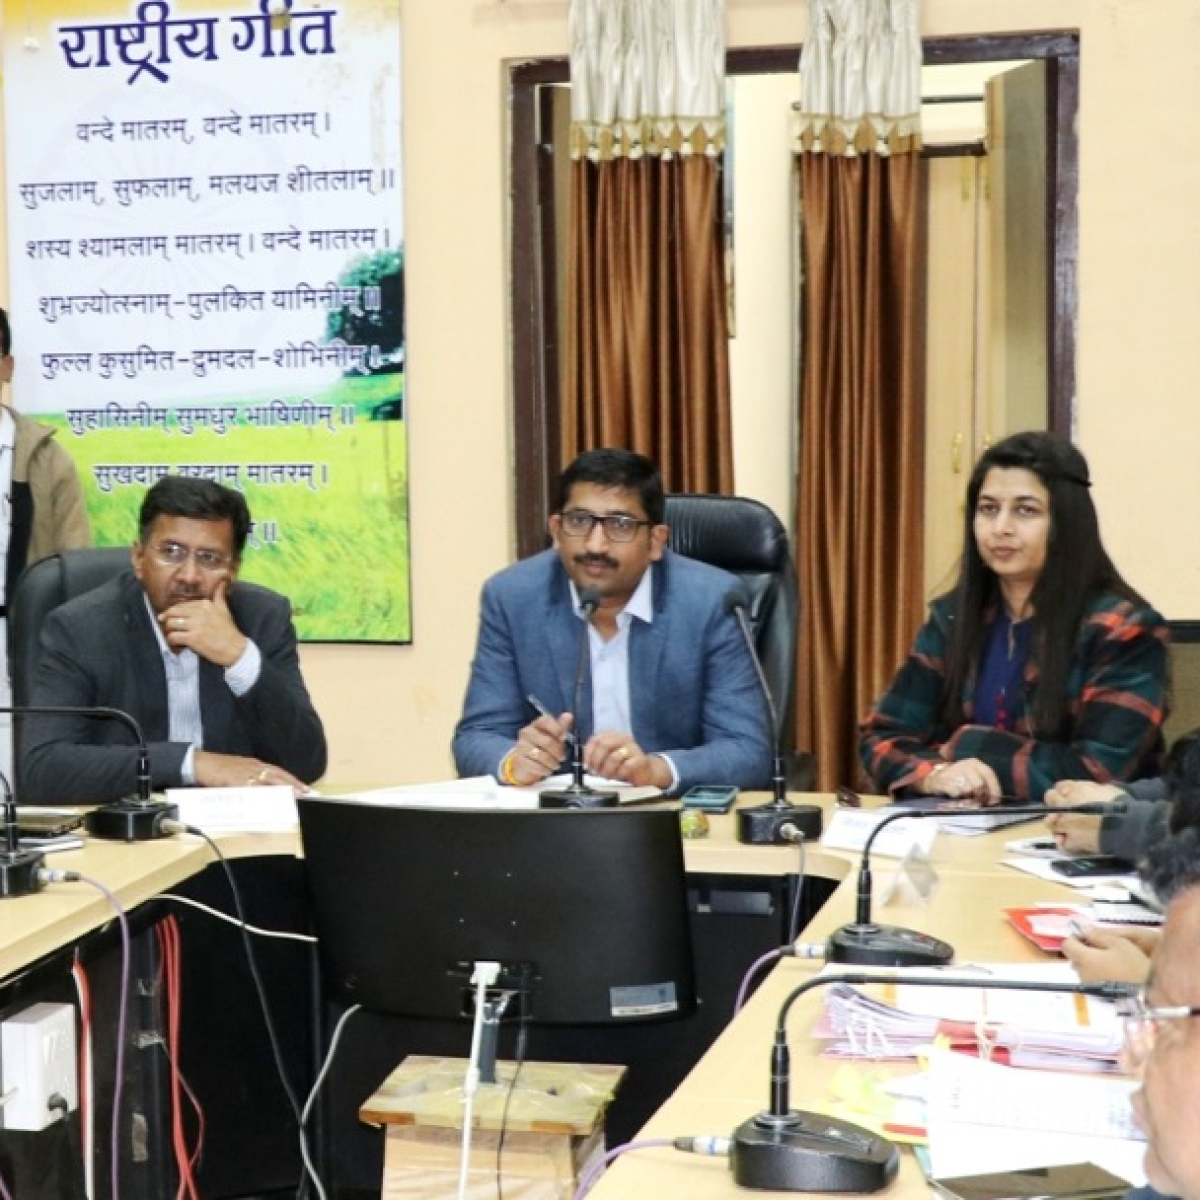 Indore: Urban bodies should increase revenue, pay attention to cleanliness, says PR department commissioner Narahari